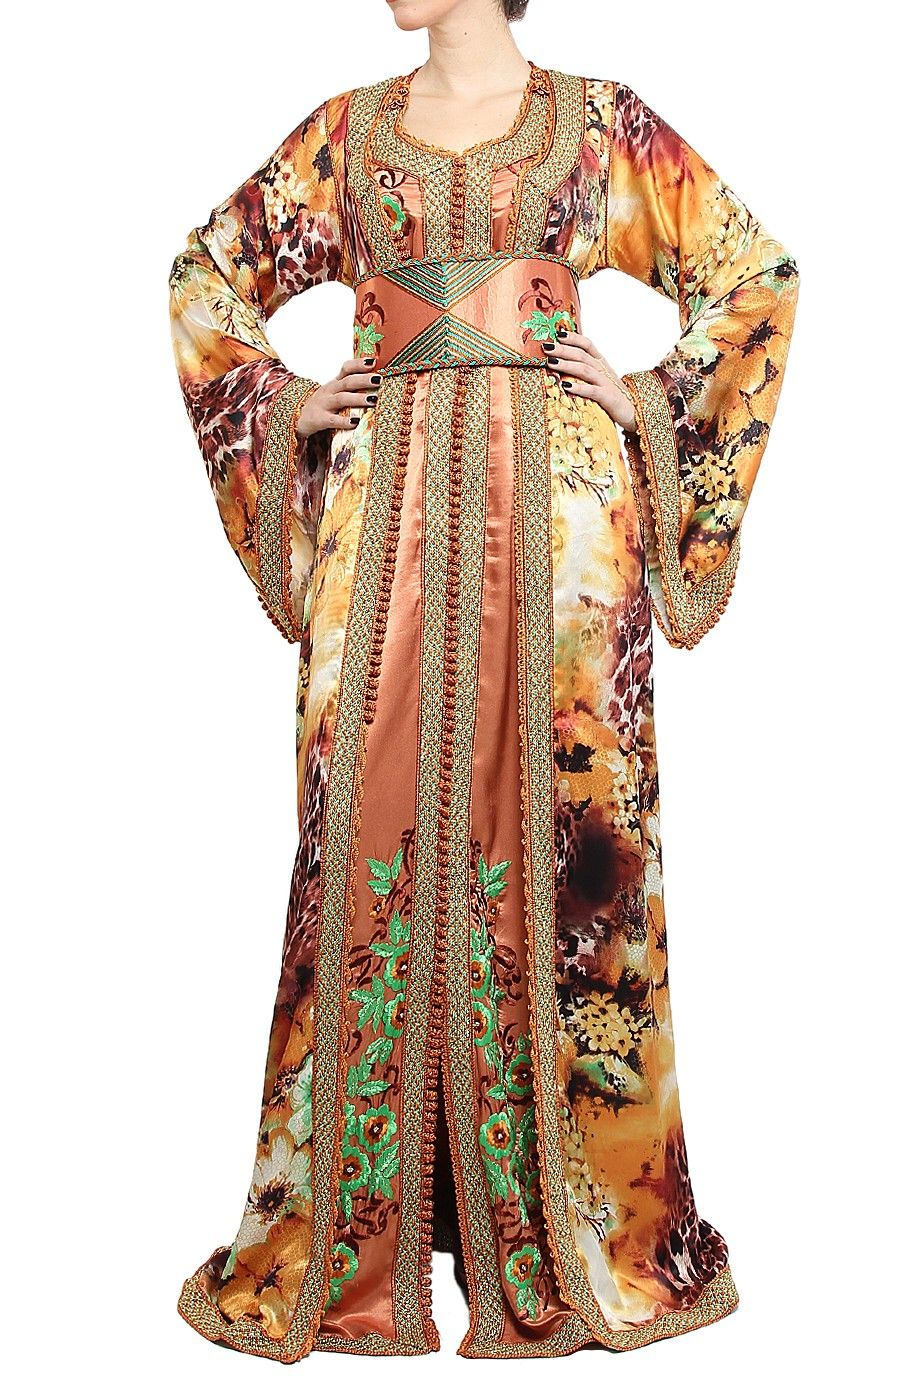 JIHAN MOROCCAN DRESS - KAFTAN | Moroccan Clothing ...